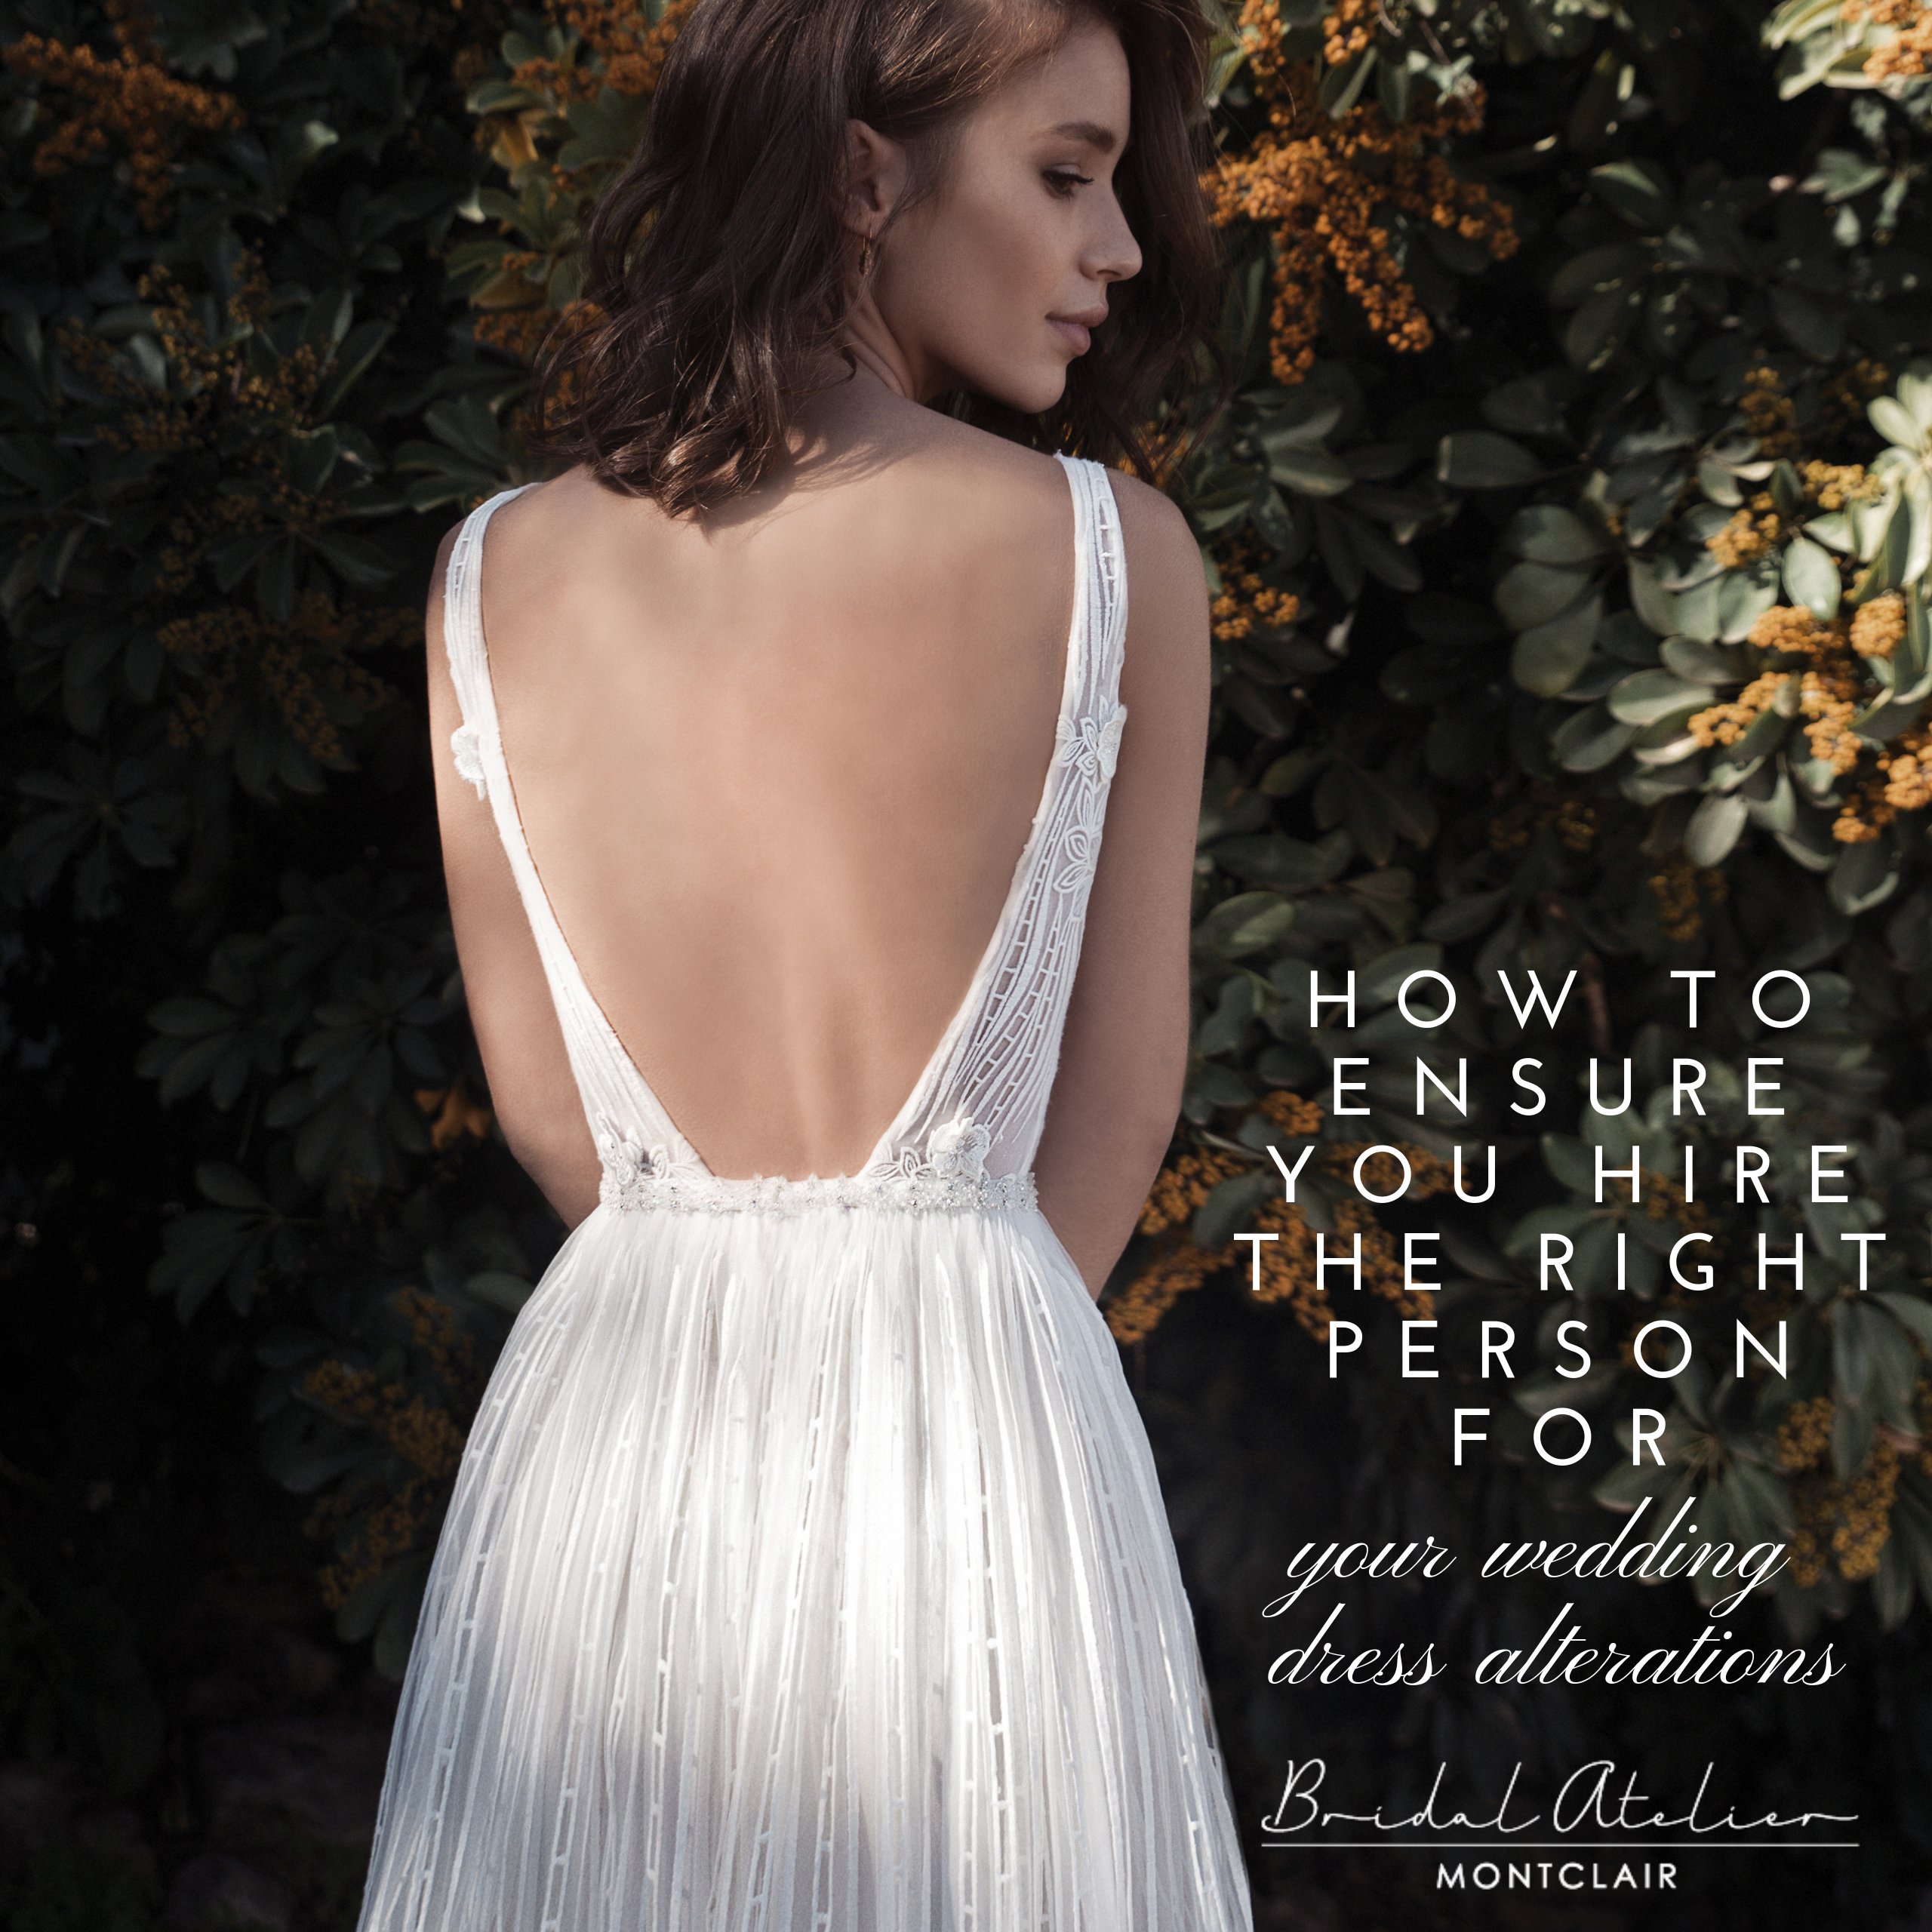 How to Ensure You Hire the Right Person for Your Wedding Dress Alterations. Desktop Image